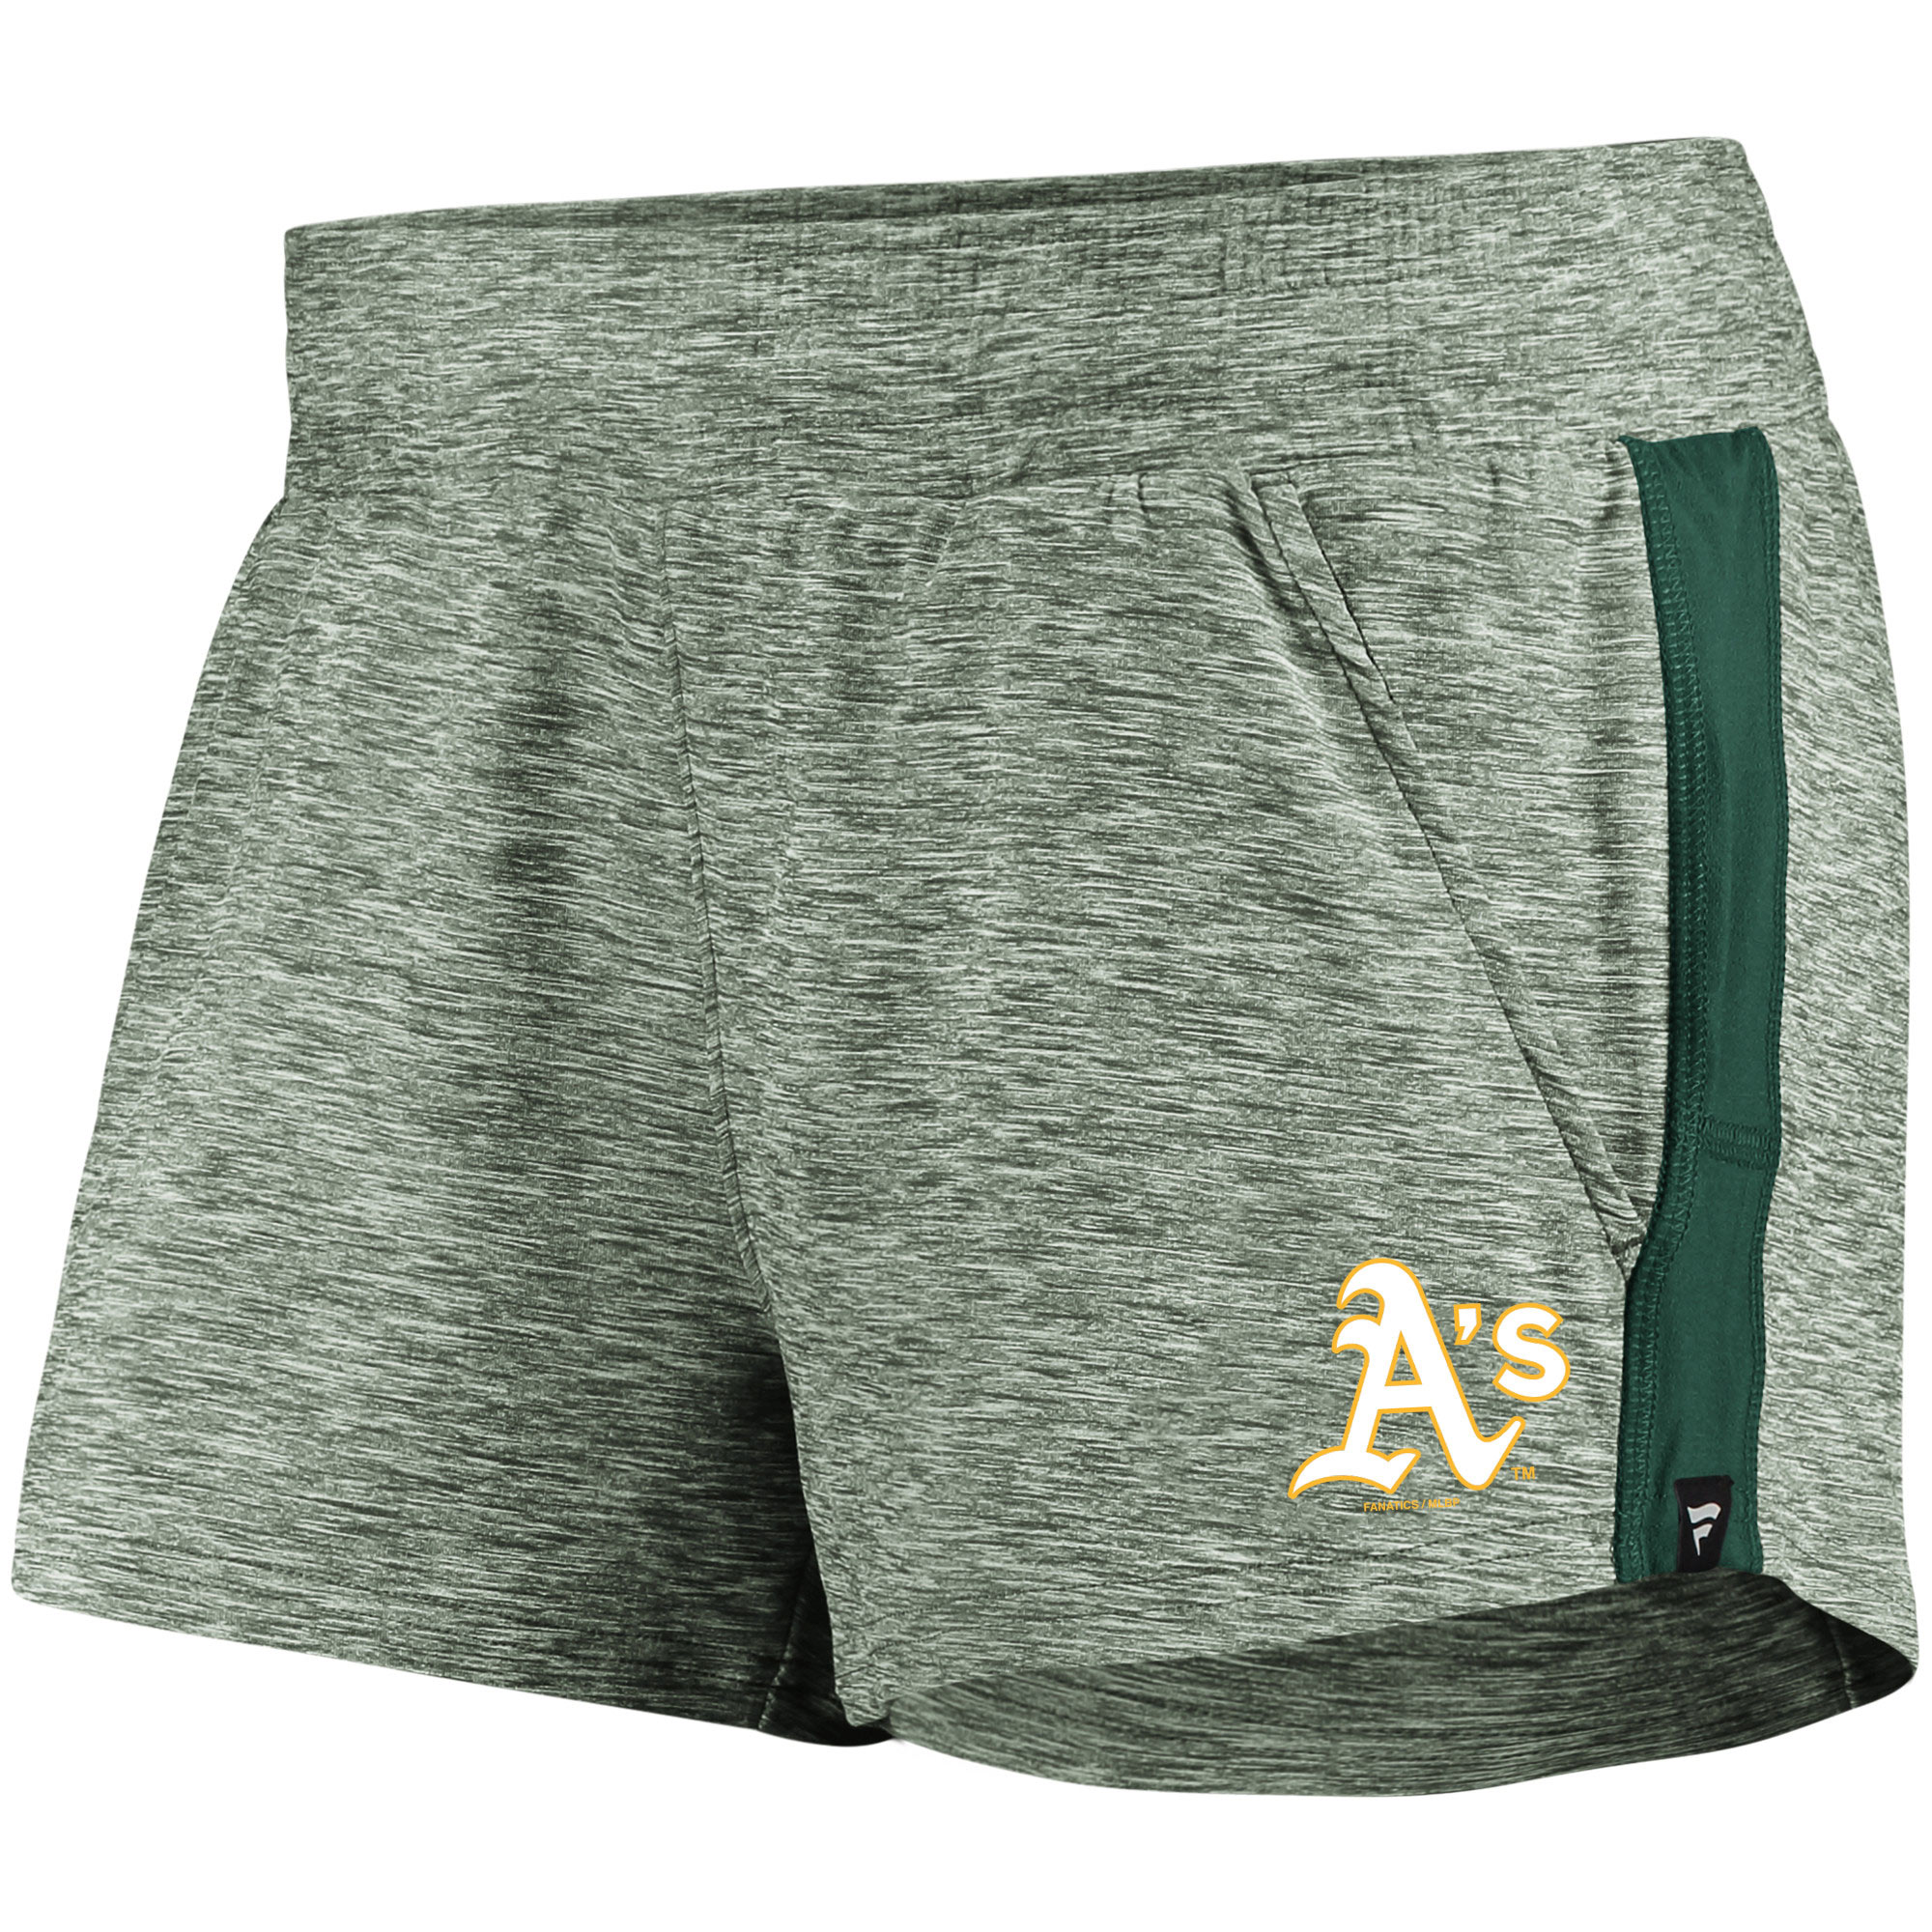 Oakland Athletics Fanatics Branded Women's Made To Move Running Shorts - Heathered Green/Green